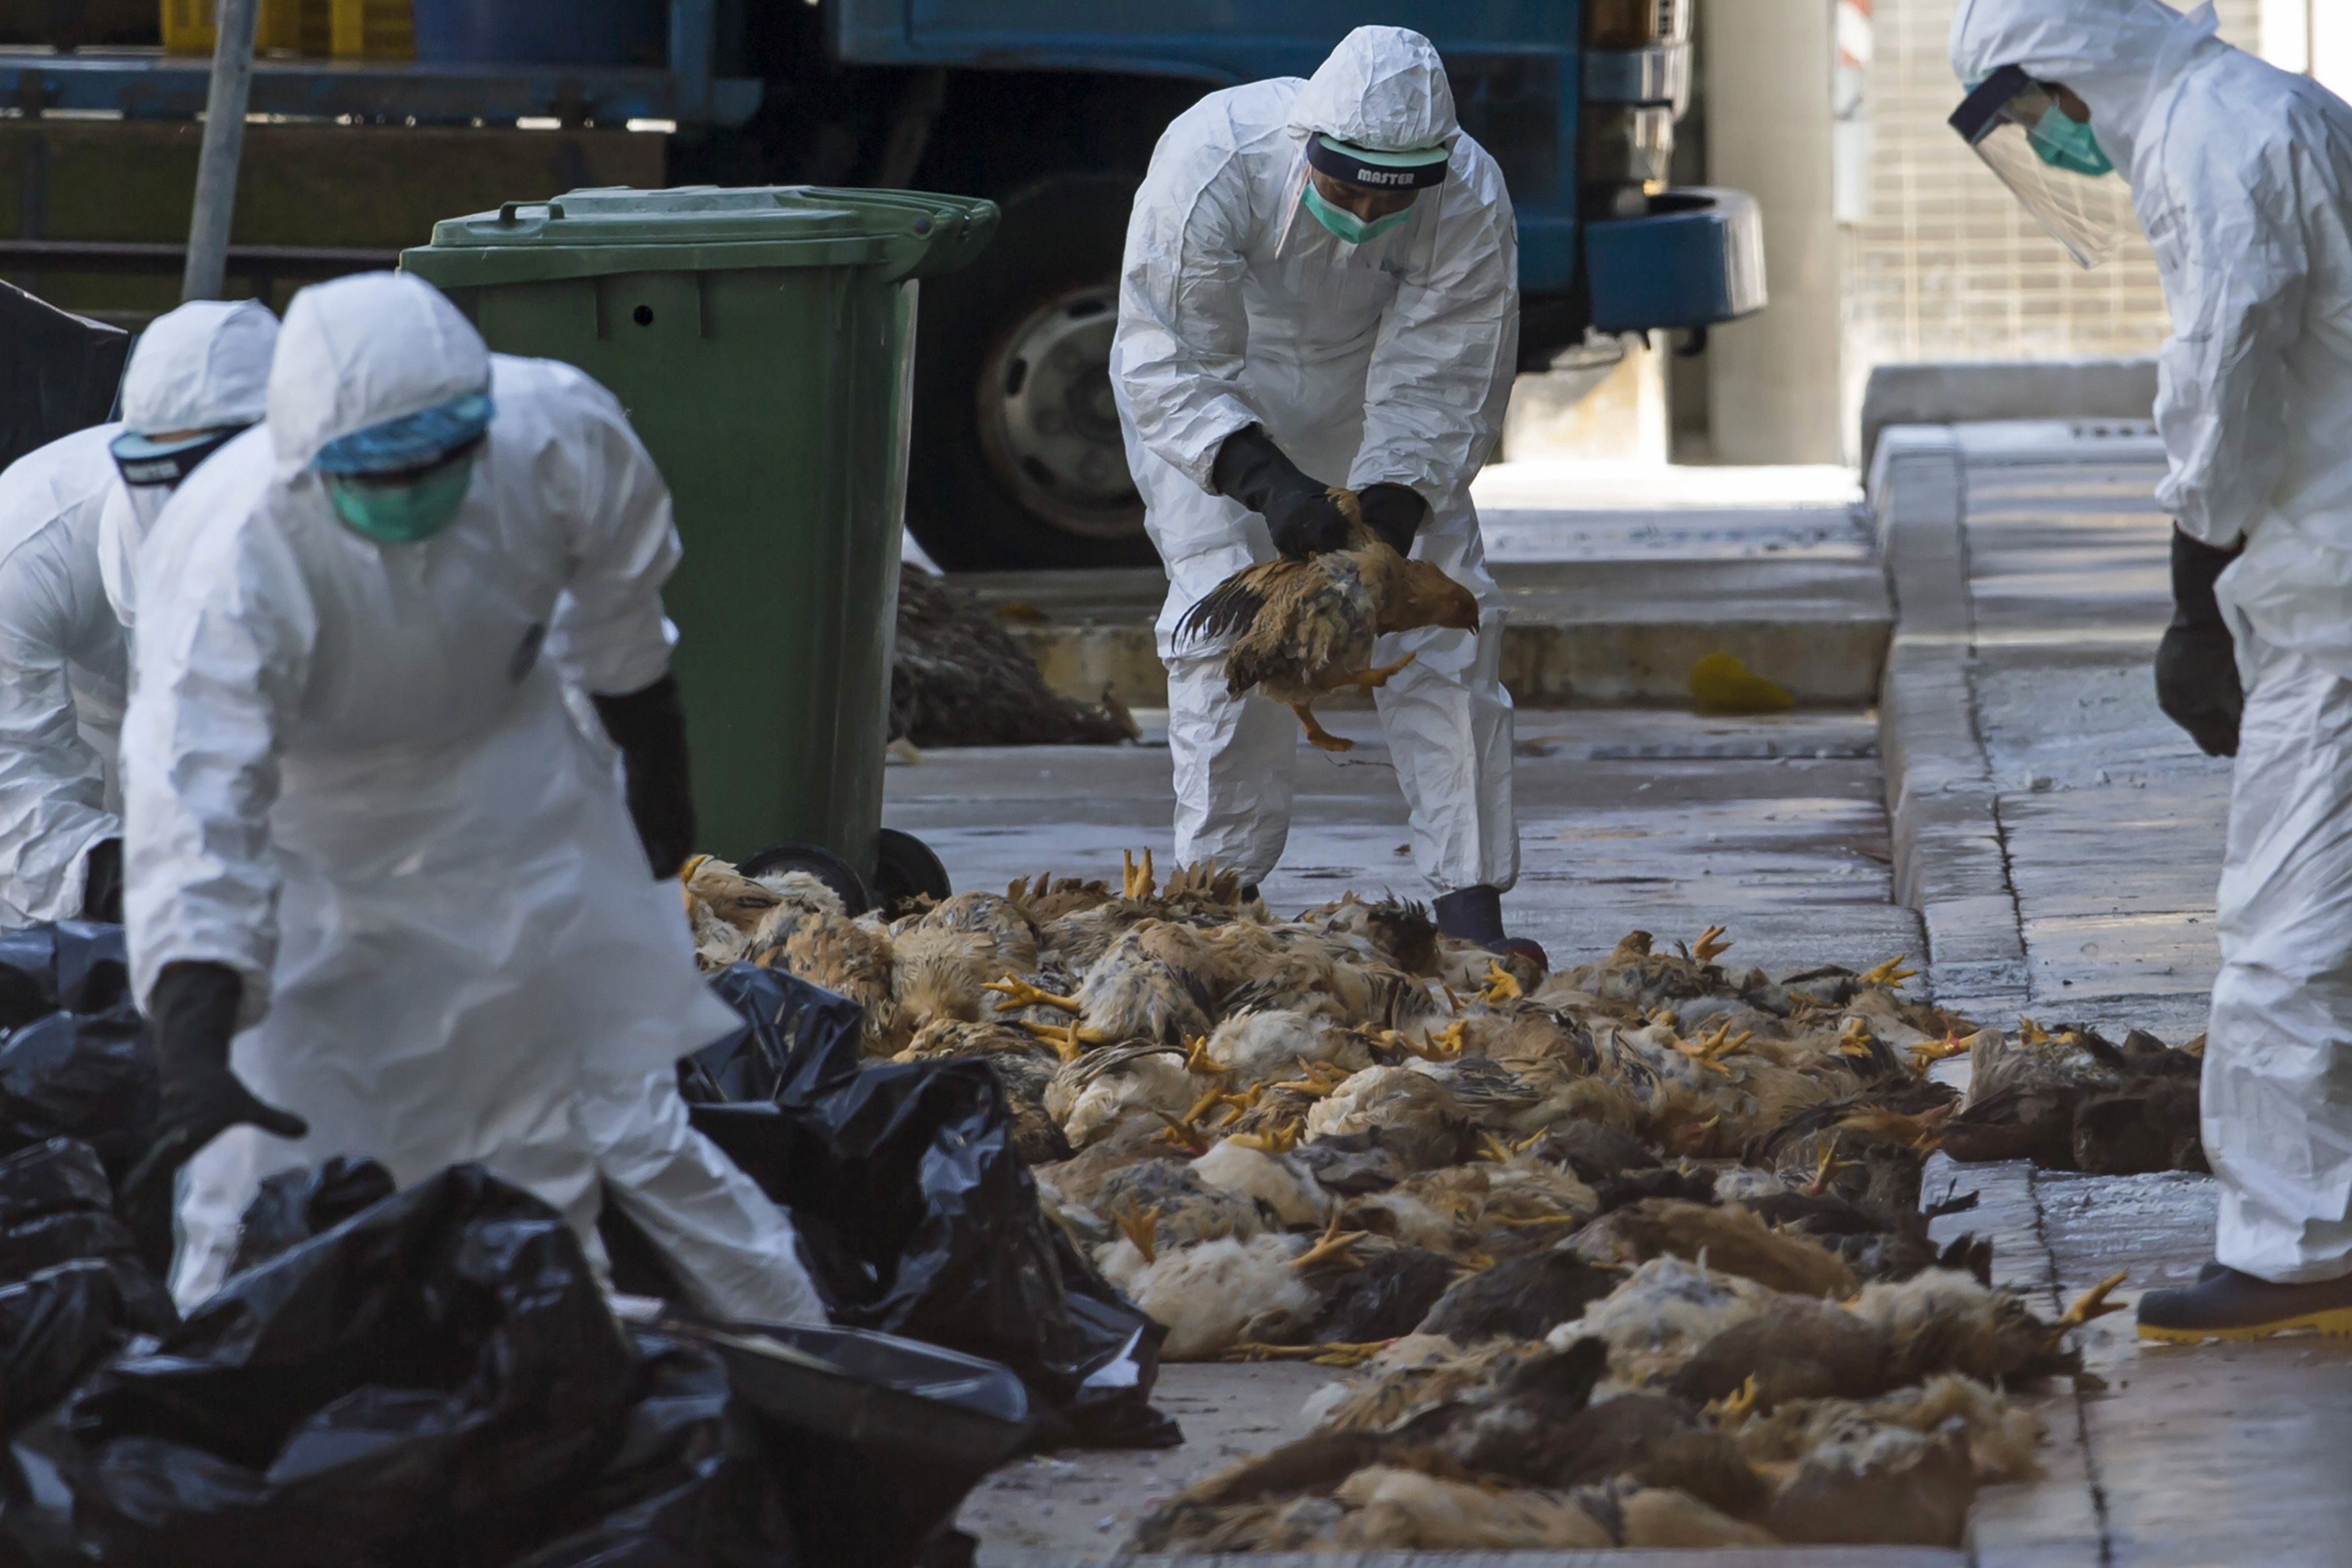 Health workers pack dead chickens into trash bins at a wholesale poultry market in Hong Kong December 31, 2014. Hong Kong began culling 15,000 chickens on Wednesday and suspended imports of live poultry from mainland China for 21 days after the H7 bird flu strain was discovered in a batch of live chickens that came from the southern province of Guangdong. REUTERS/Tyrone Siu (CHINA - Tags: HEALTH AGRICULTURE ANIMALS FOOD POLITICS)